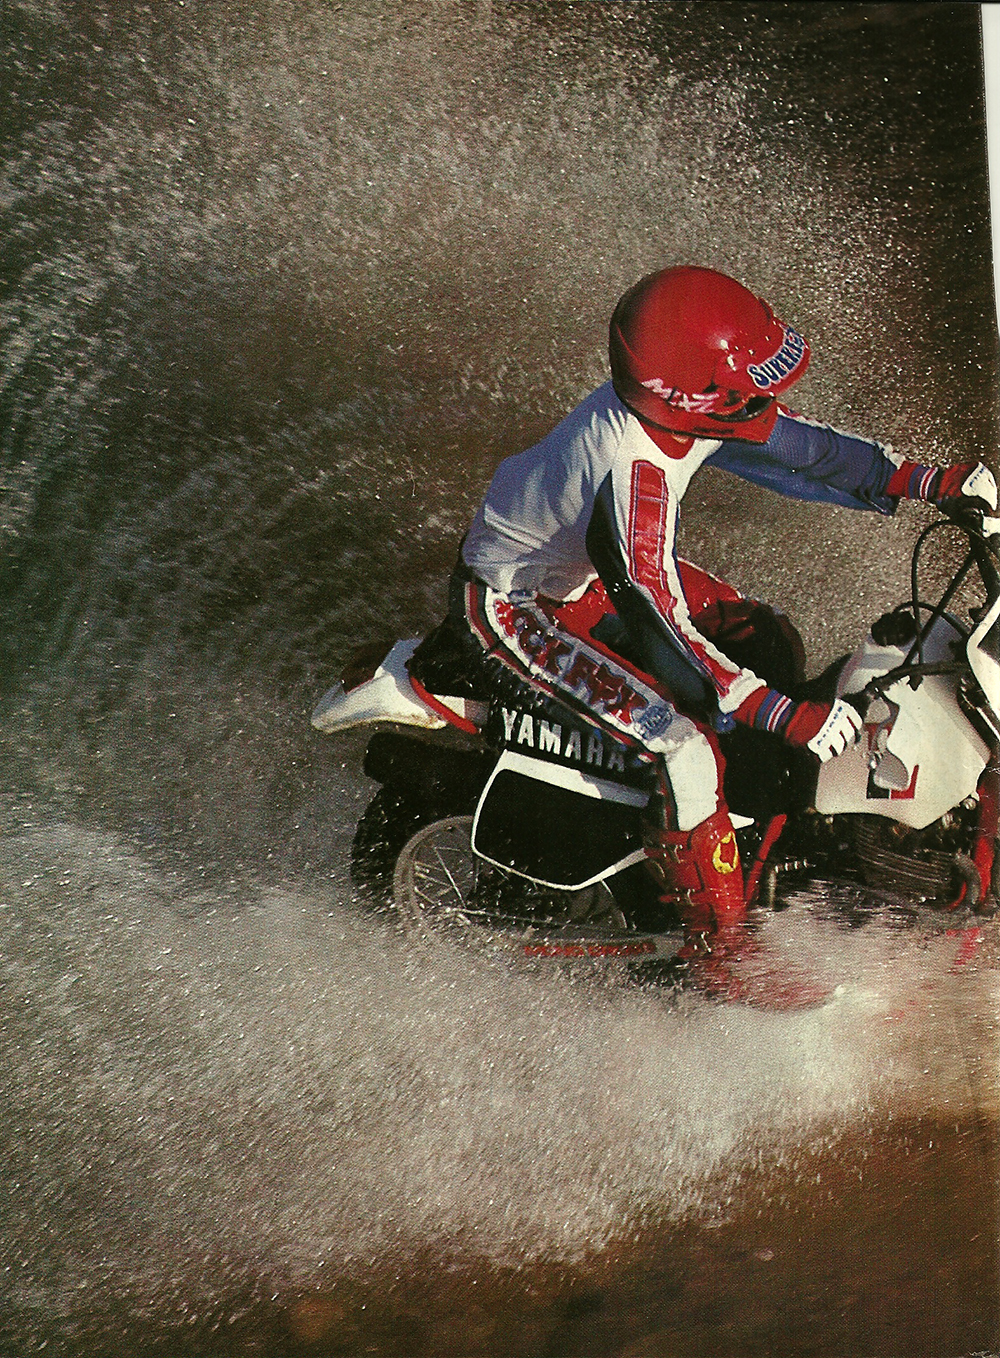 1983 Yamaha TT600K off road test 1.jpg